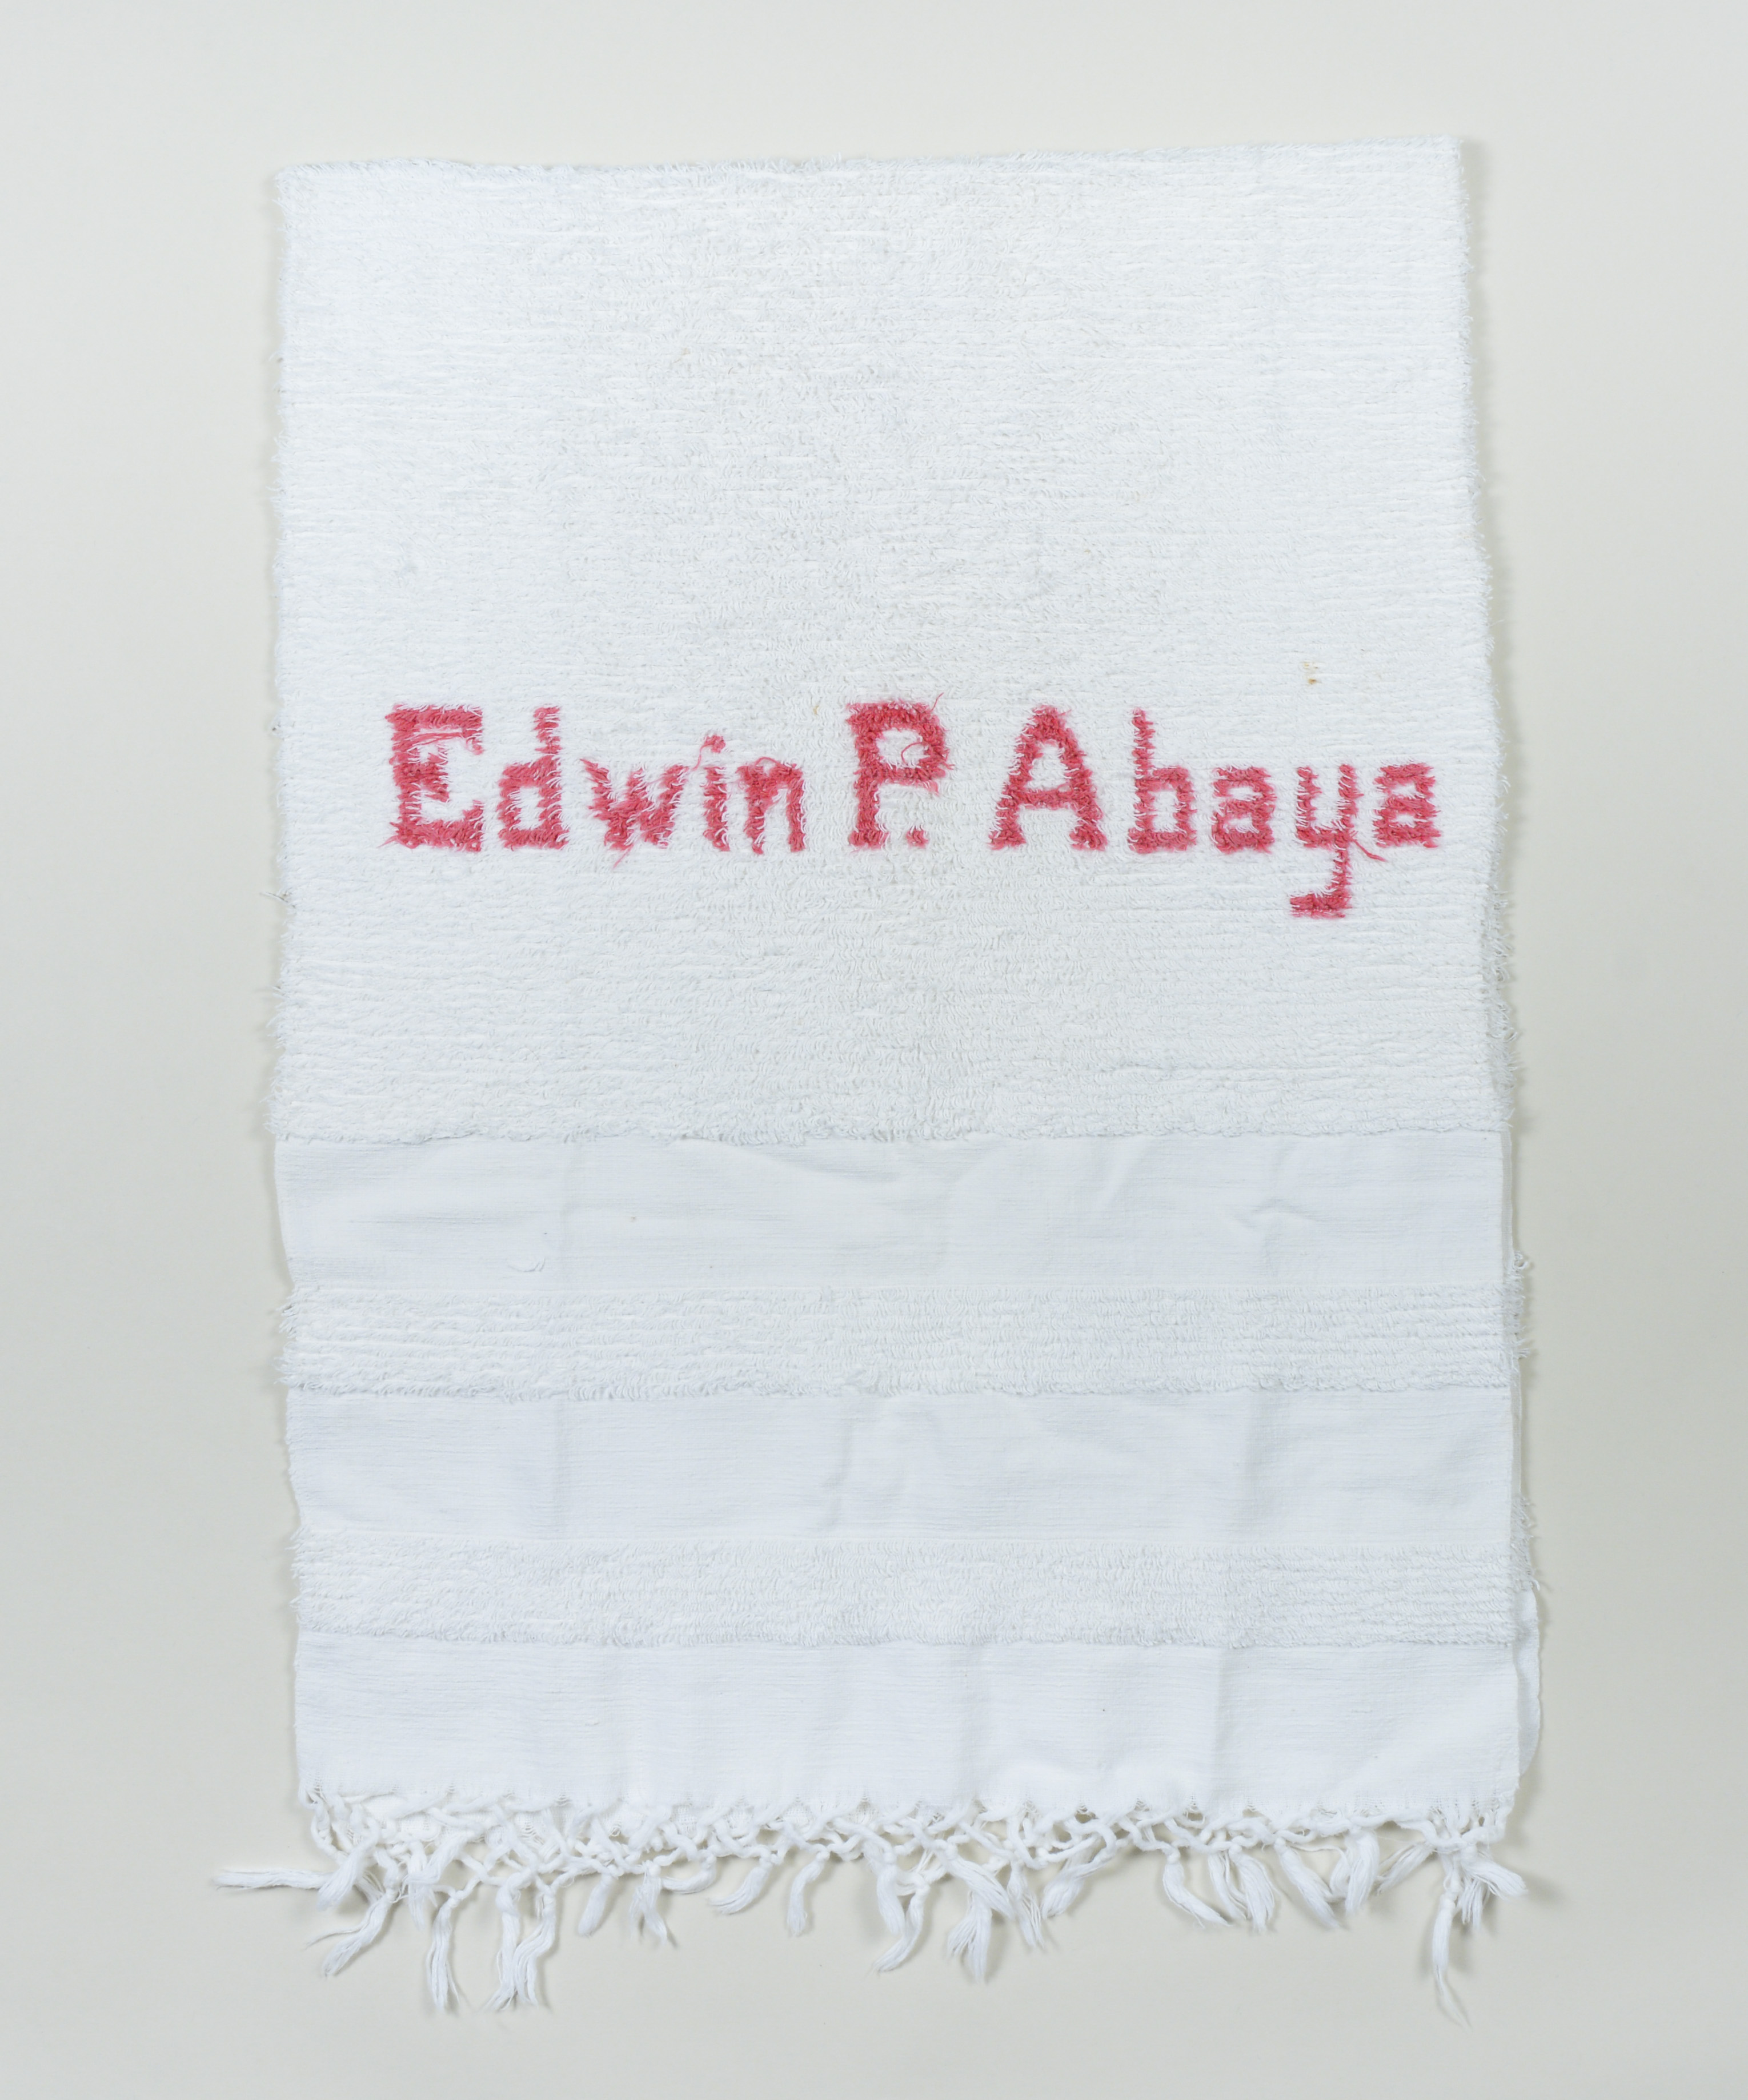 "Abel Iloko (Hand woven) bath robe owned by Edwin P. Abaya. Made in the early to mid 1960s; given to Edwin by his mother in the mid 1960s. He left the Philippines in 1968 and brought this towel with him because his mother had passed away by then and it is a keepsake from her. It was the only monogrammed object he had, and he likes that it looks like such quality work and they ""didn't misspell my name."" Vigan, Ilocos Sur, was known for hand weaving; they make clothing, towels, pashminas, etc. still today.   Any views, findings, conclusions, or recommendations expressed in this story do not necessarily represent those of the National Endowment for the Humanities. [Copyright] Field Museum of Natural History - CC BY-NC"